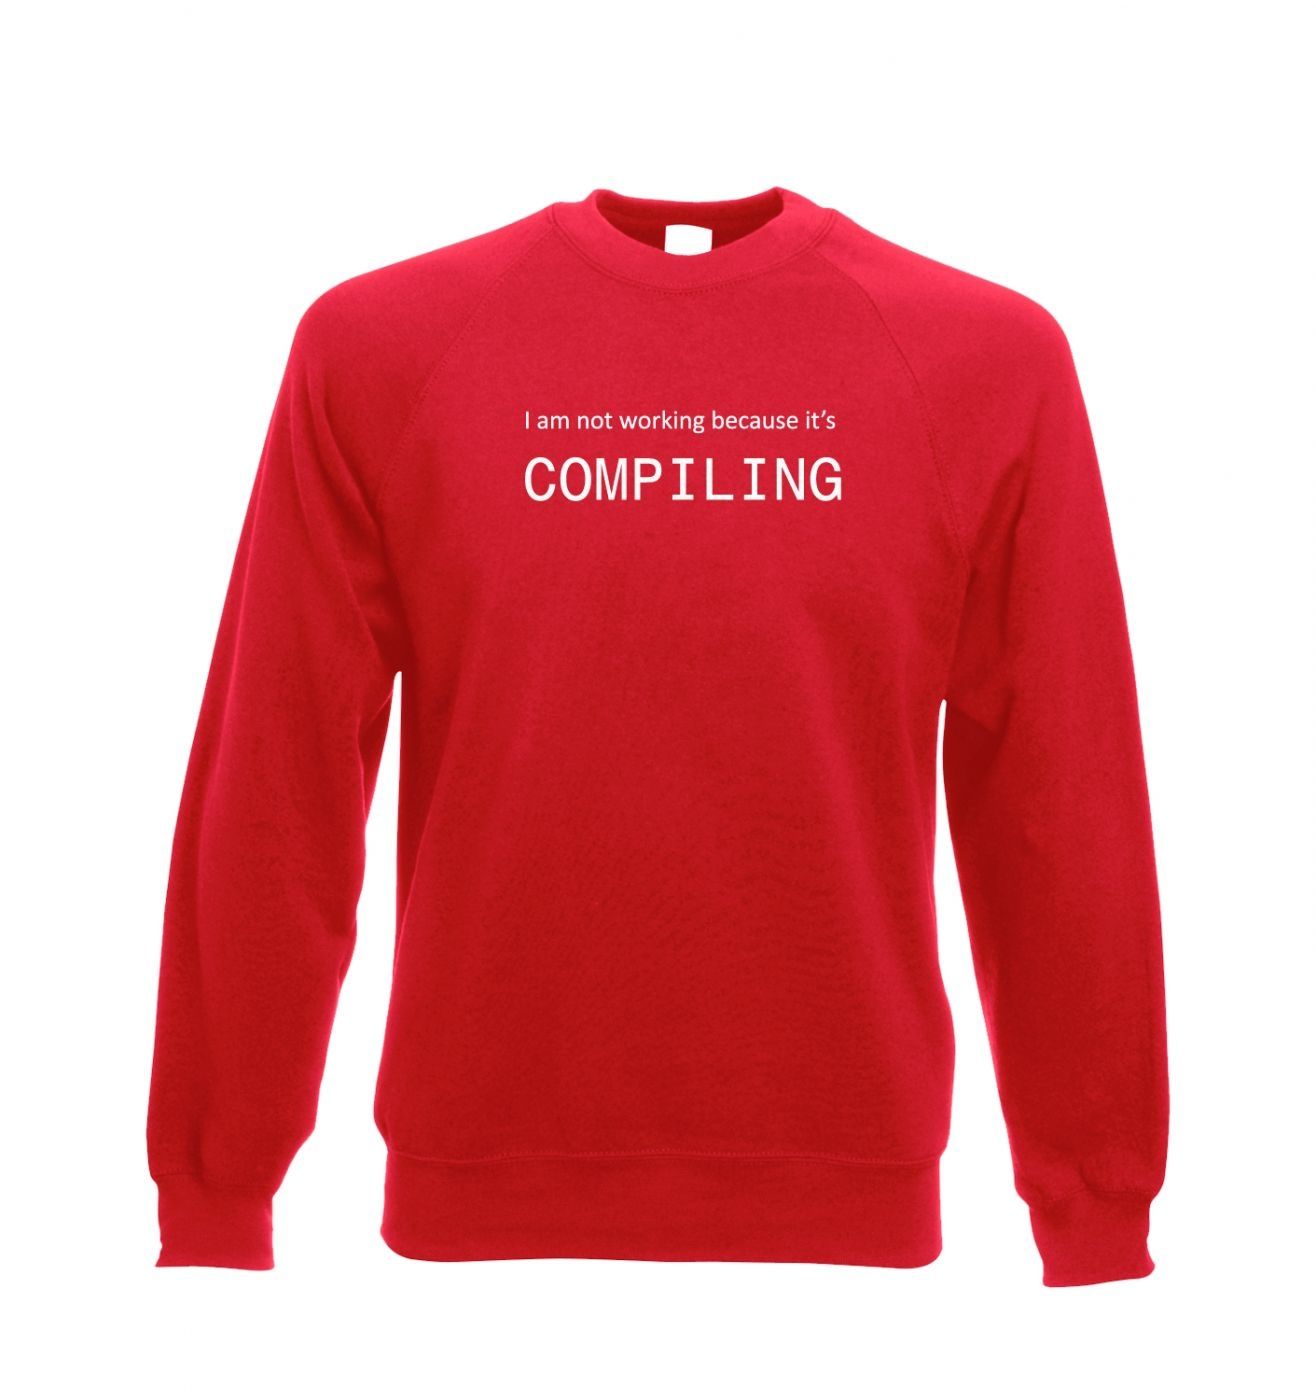 I Am Not Working Because It's Compiling IT sweatshirt